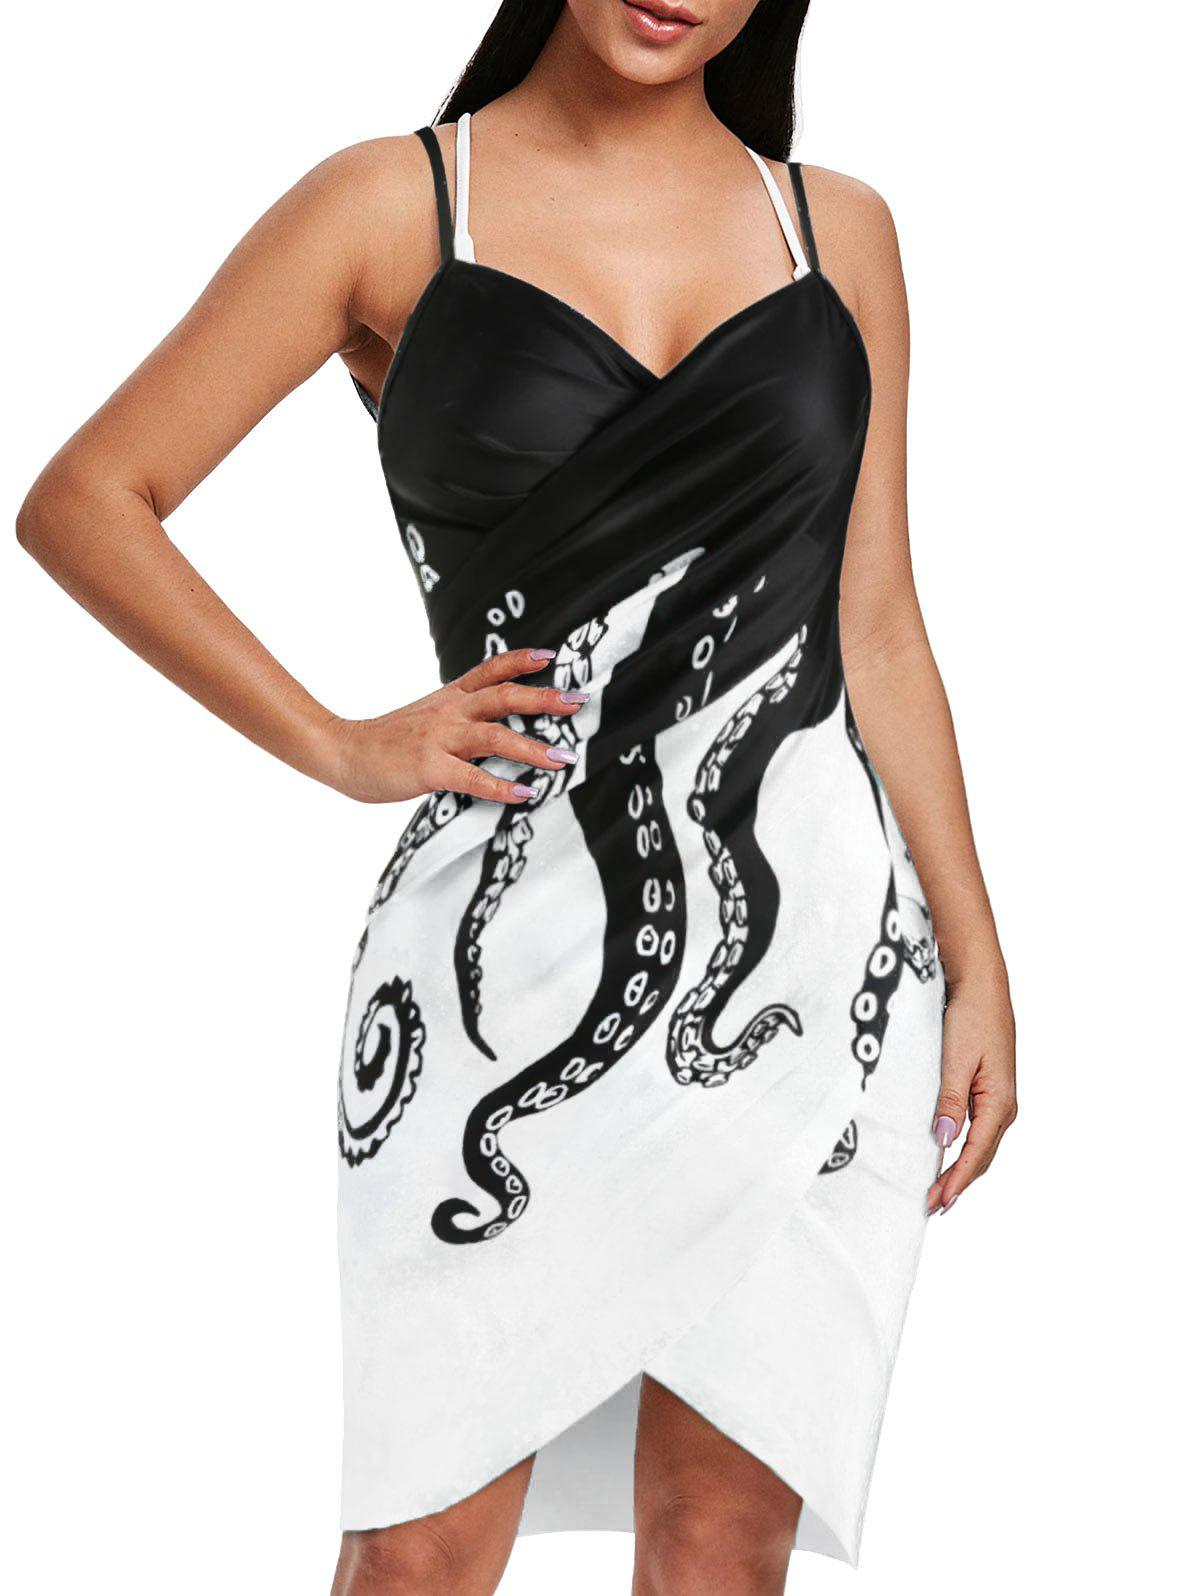 Galaxy Octopus Print Spaghetti Strap Cover-up - WHITE S